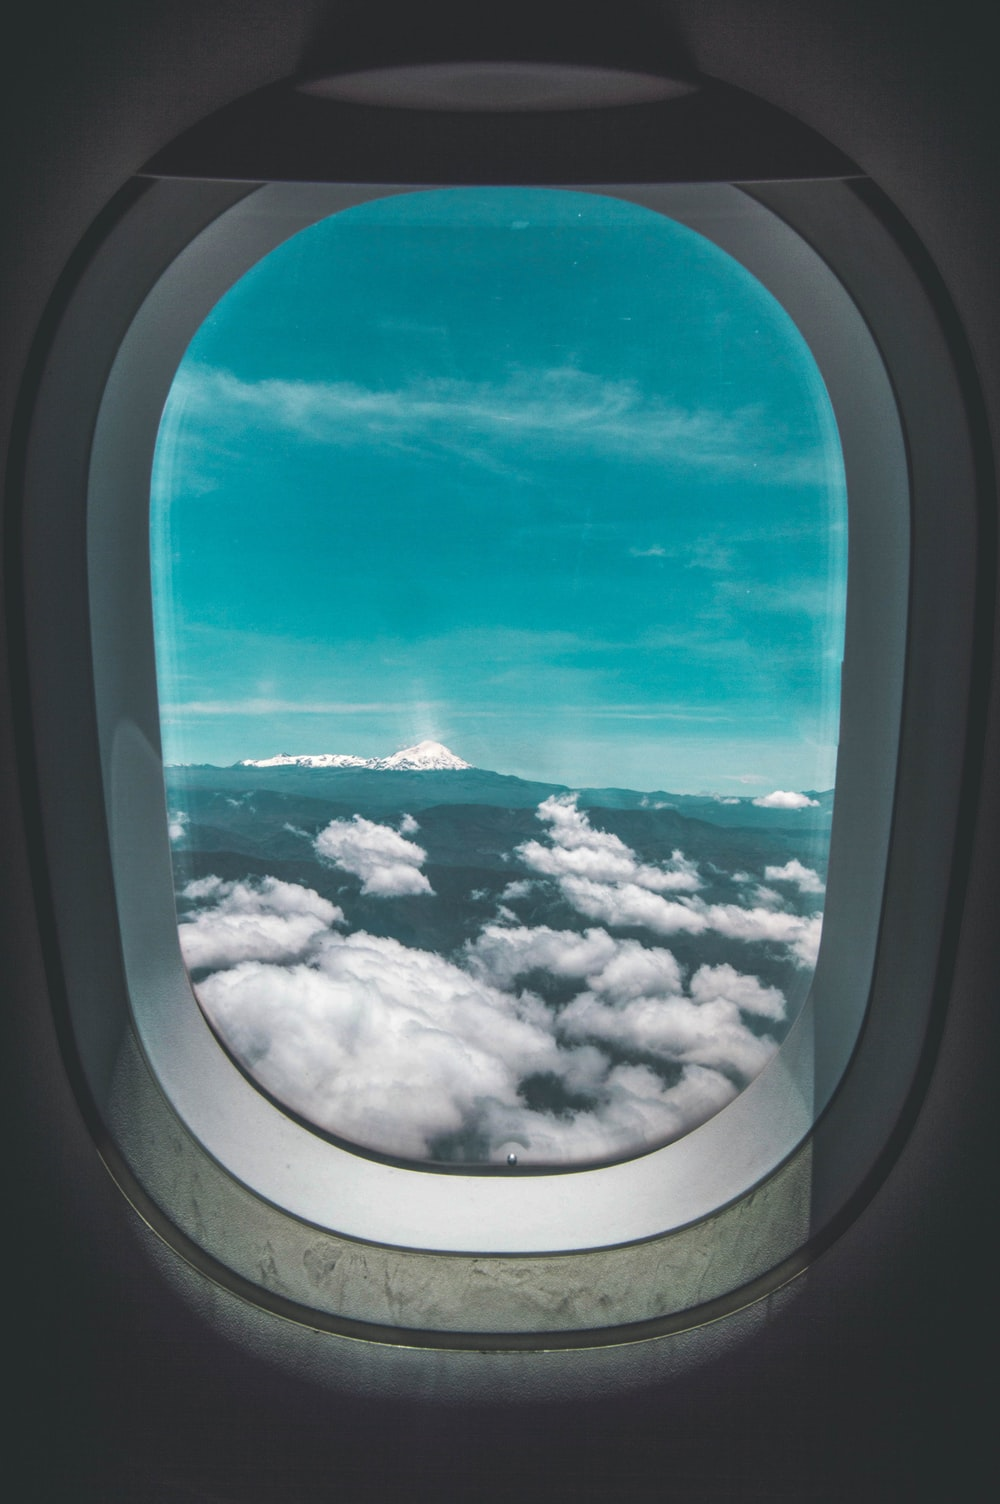 airplane window during daytime